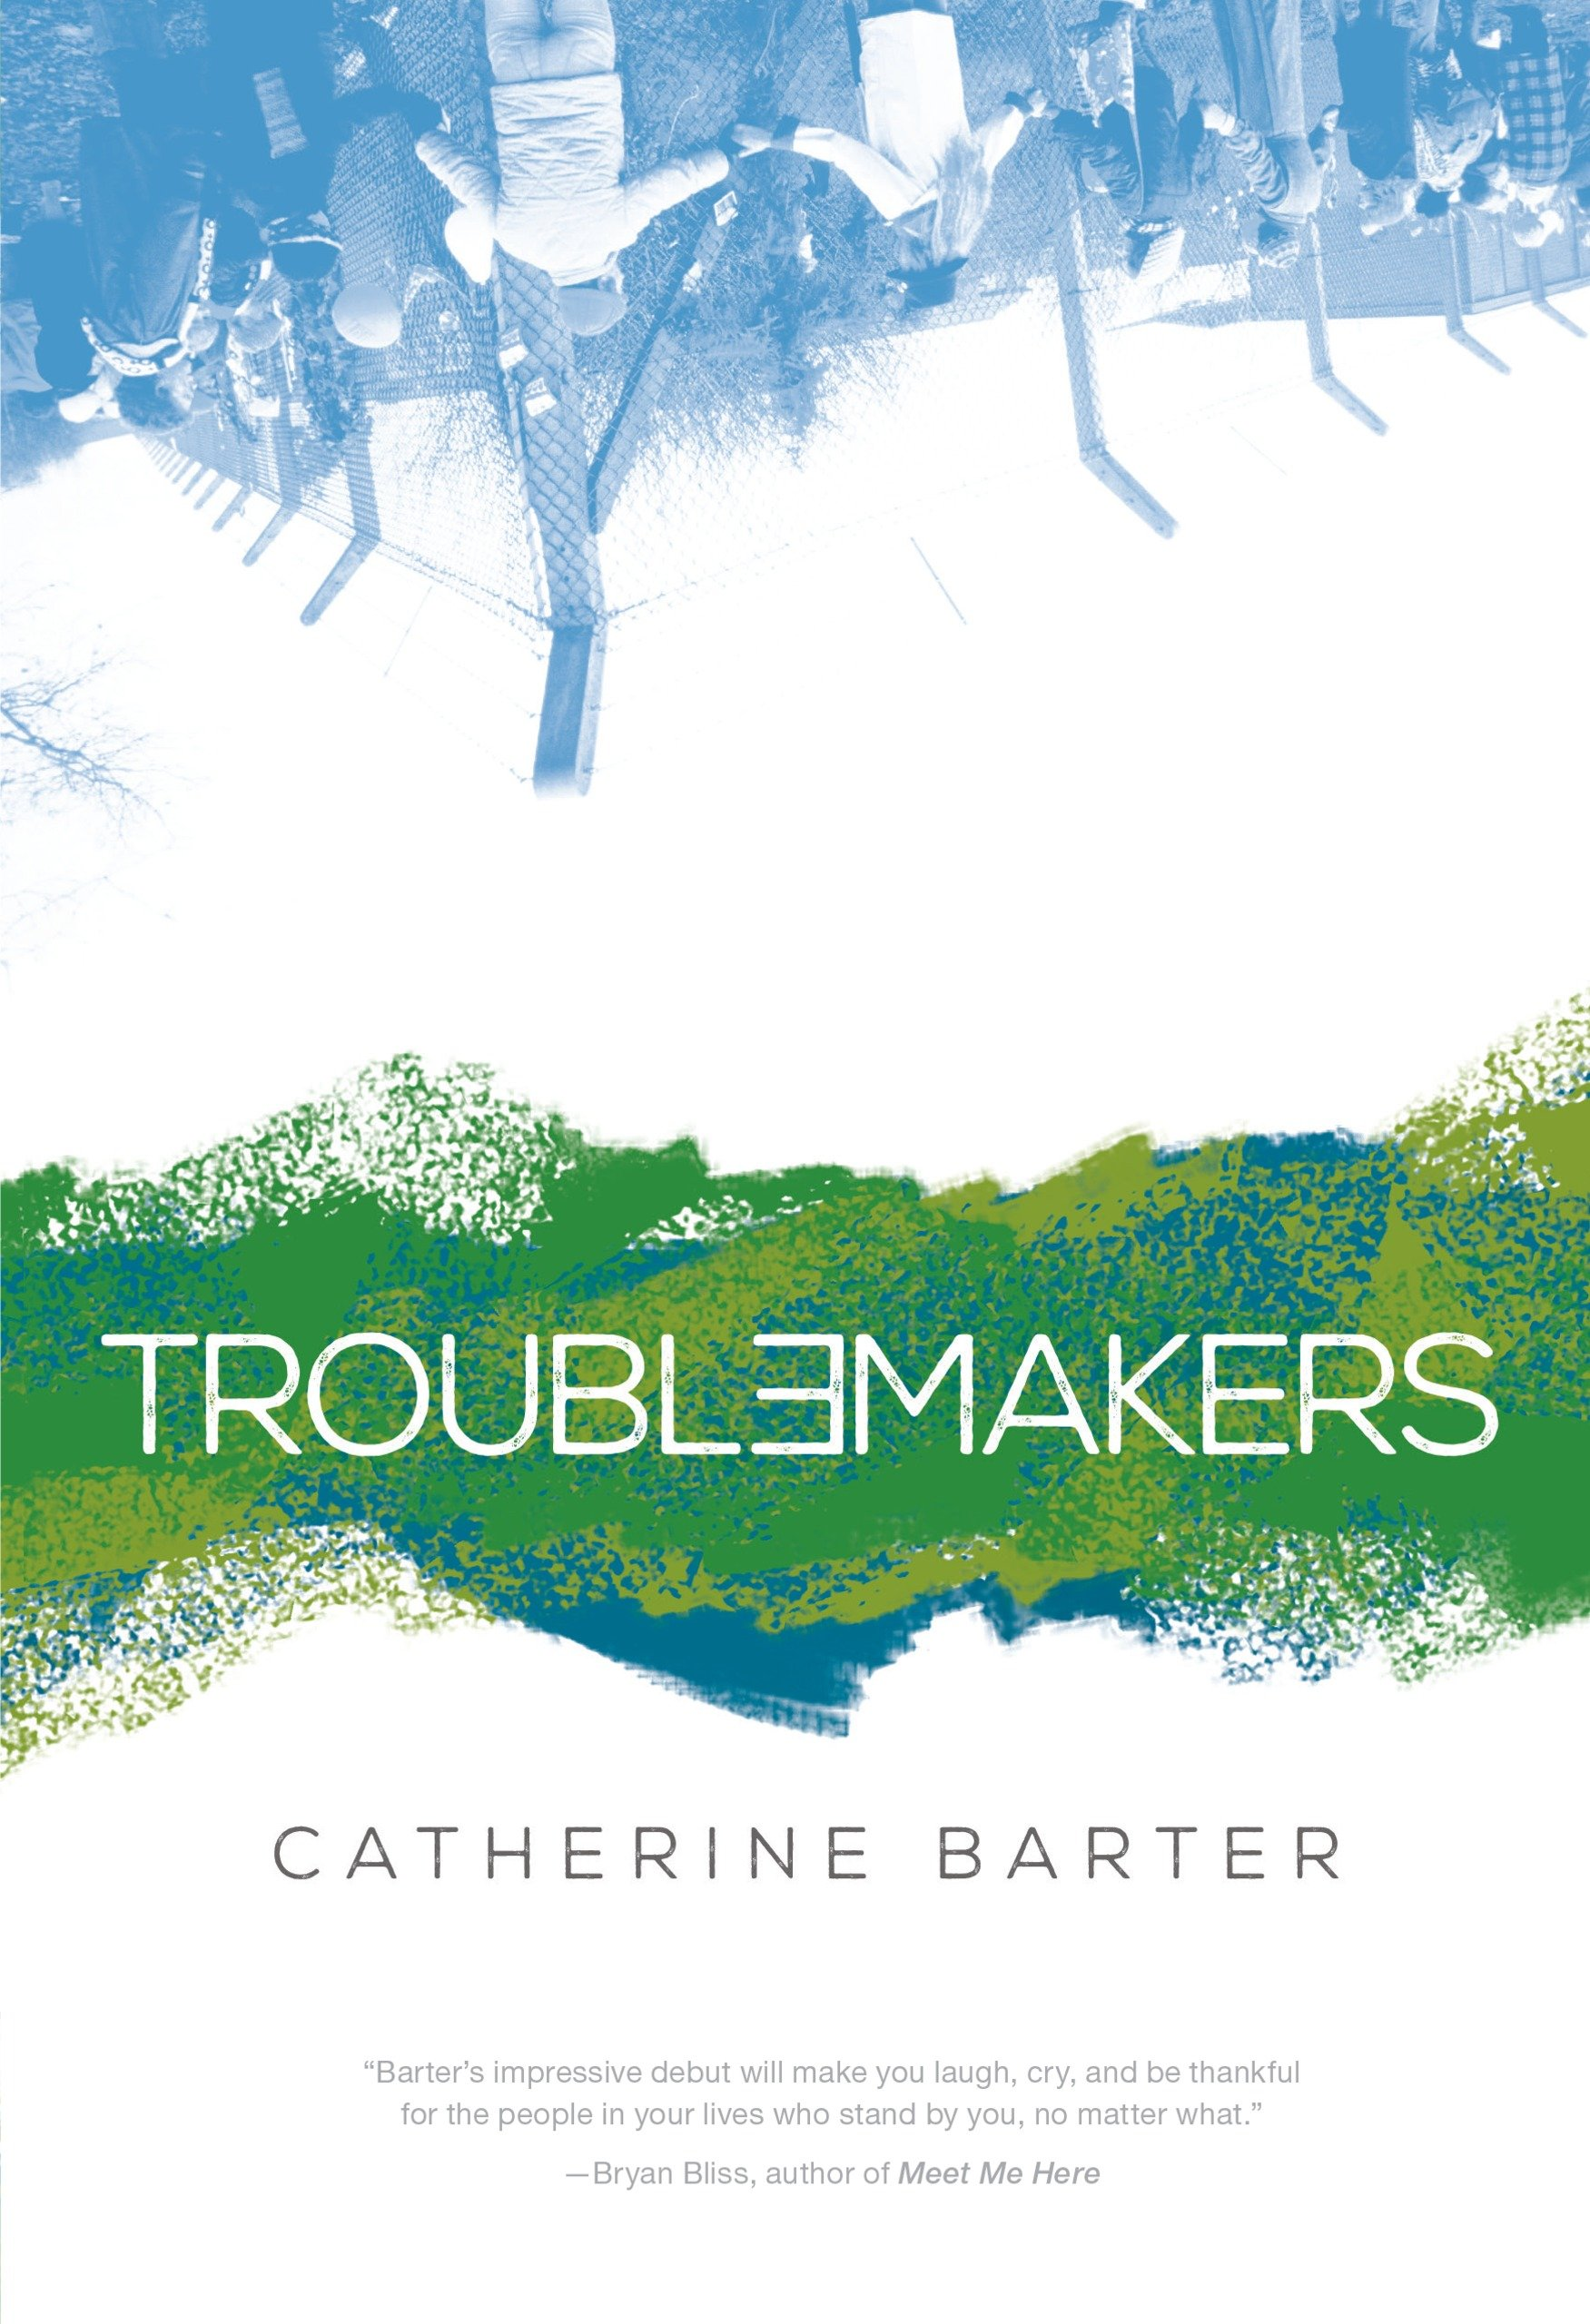 43a2bea1d Amazon.com: Troublemakers (9781512475494): Catherine Barter: Books